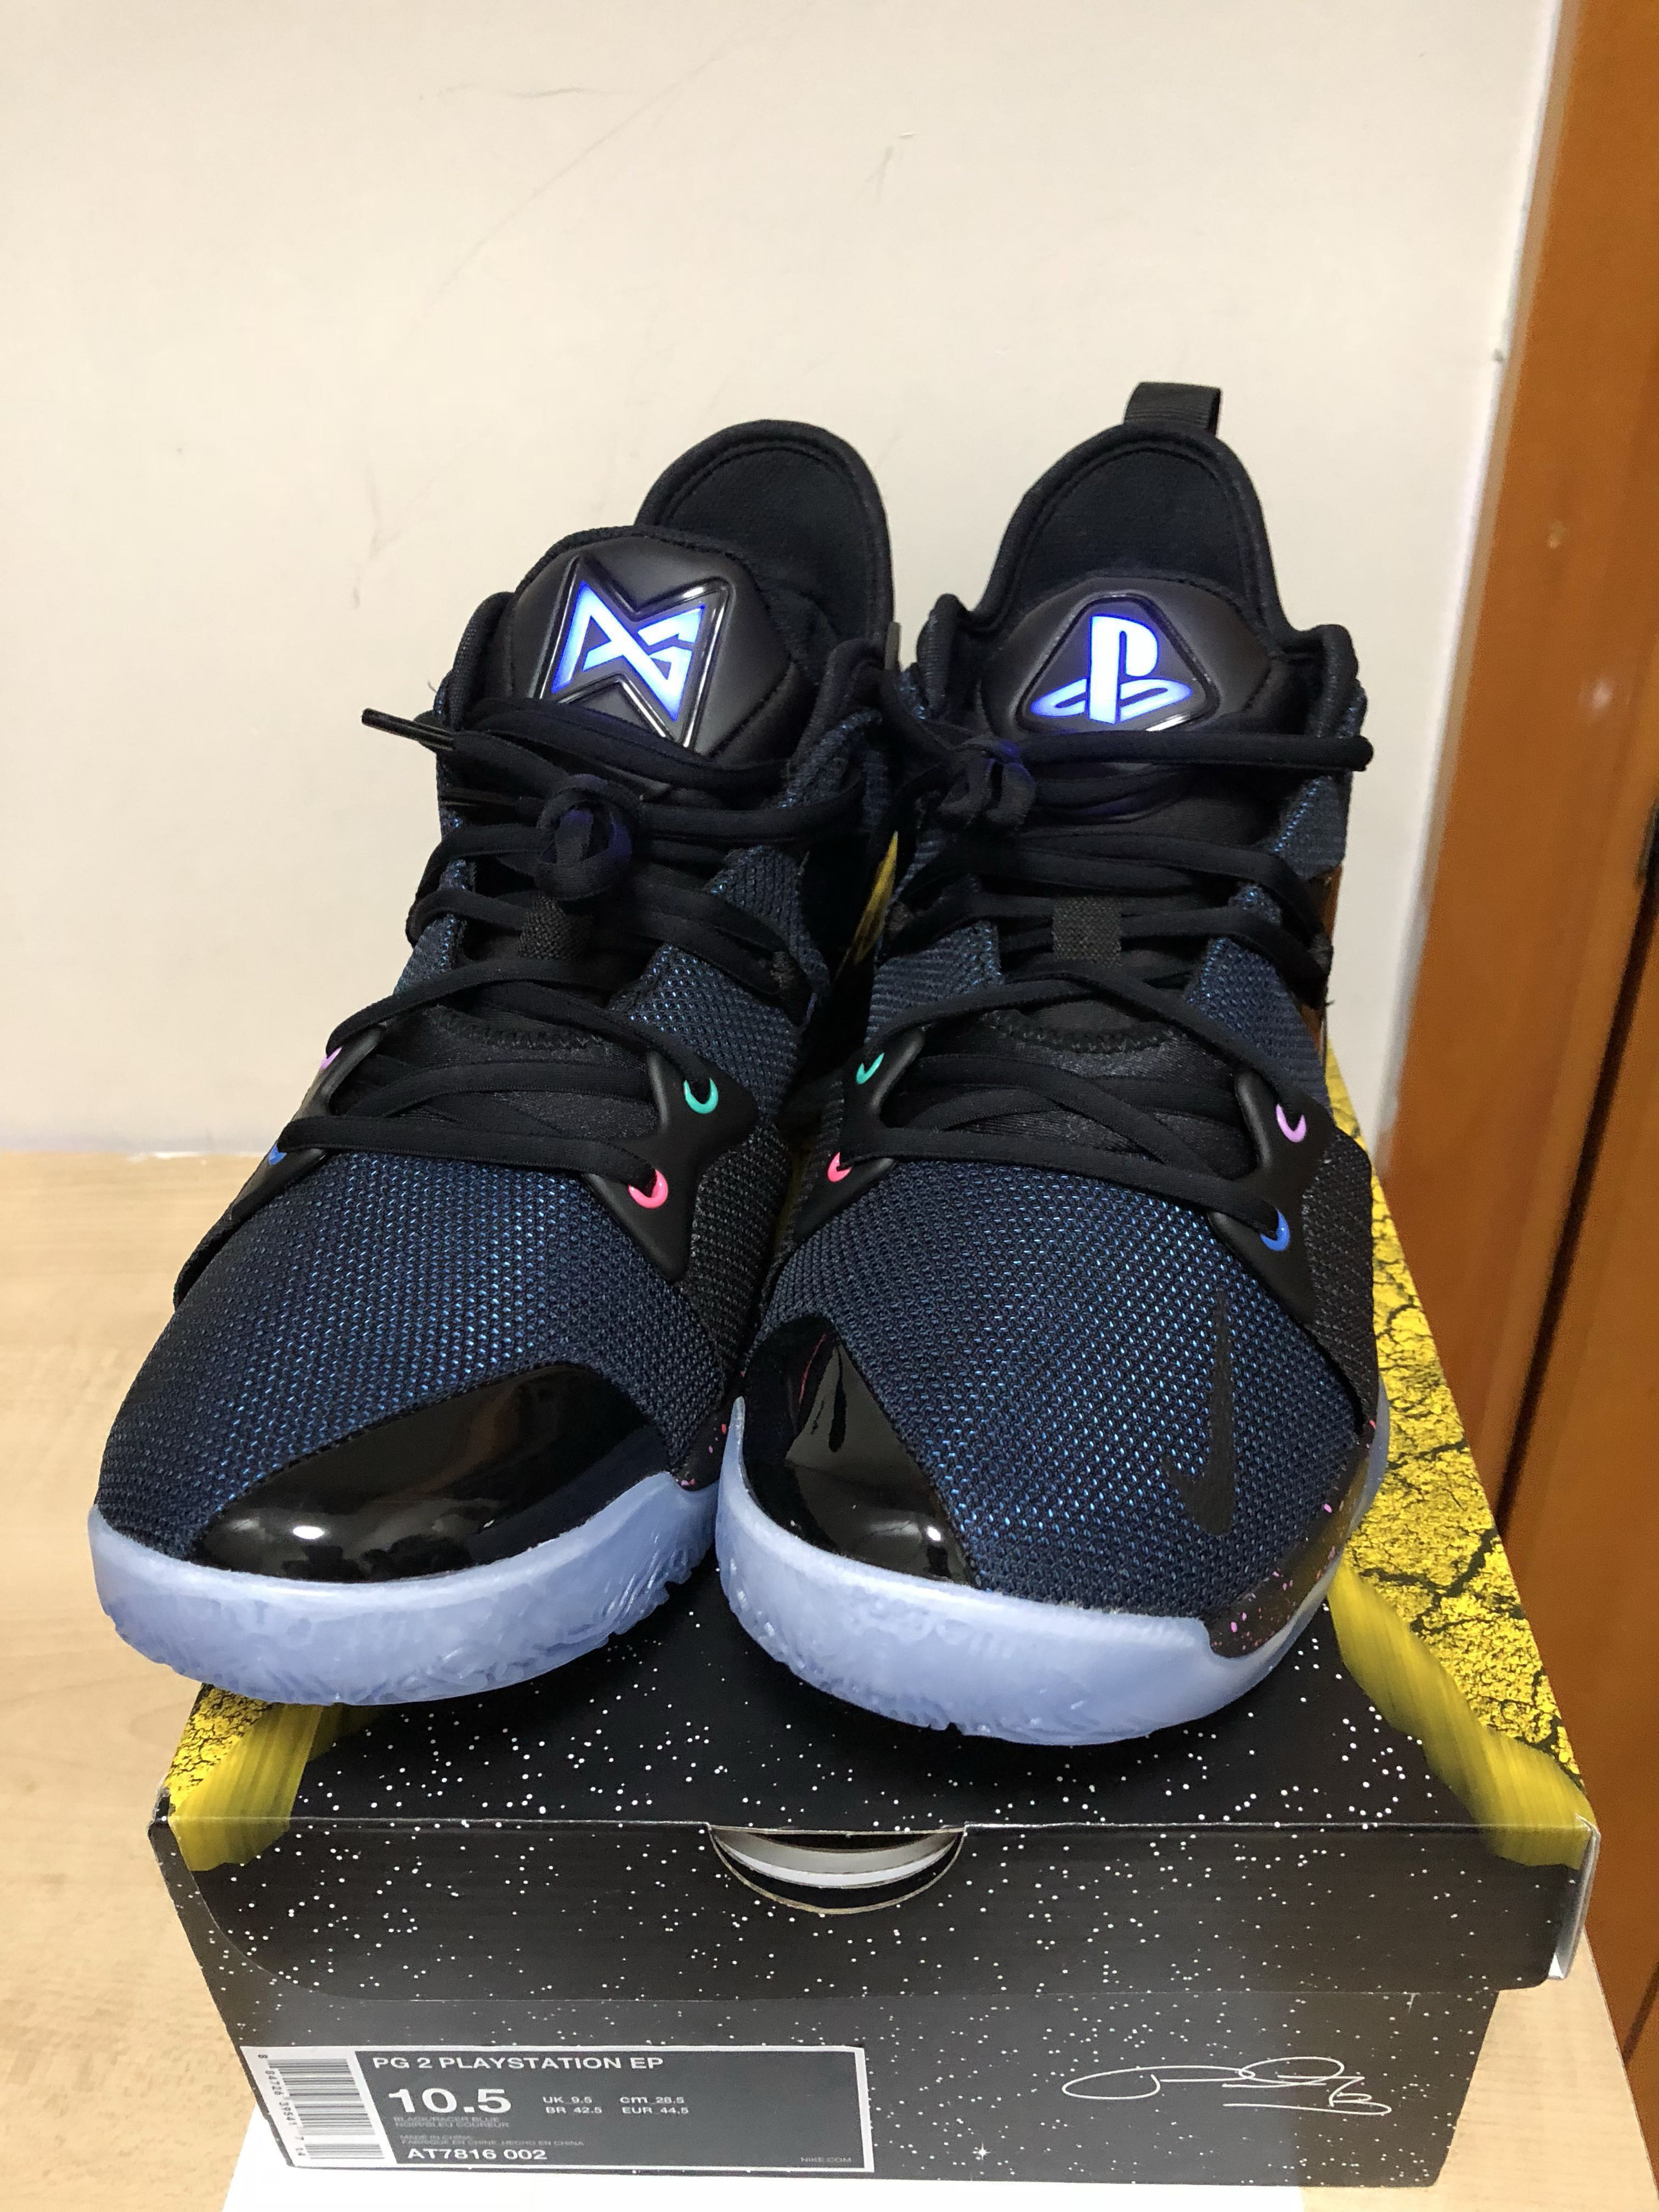 separation shoes bf662 65062 Nike PG 2 PlayStation EP - Us10.5 PG2 PlayStation